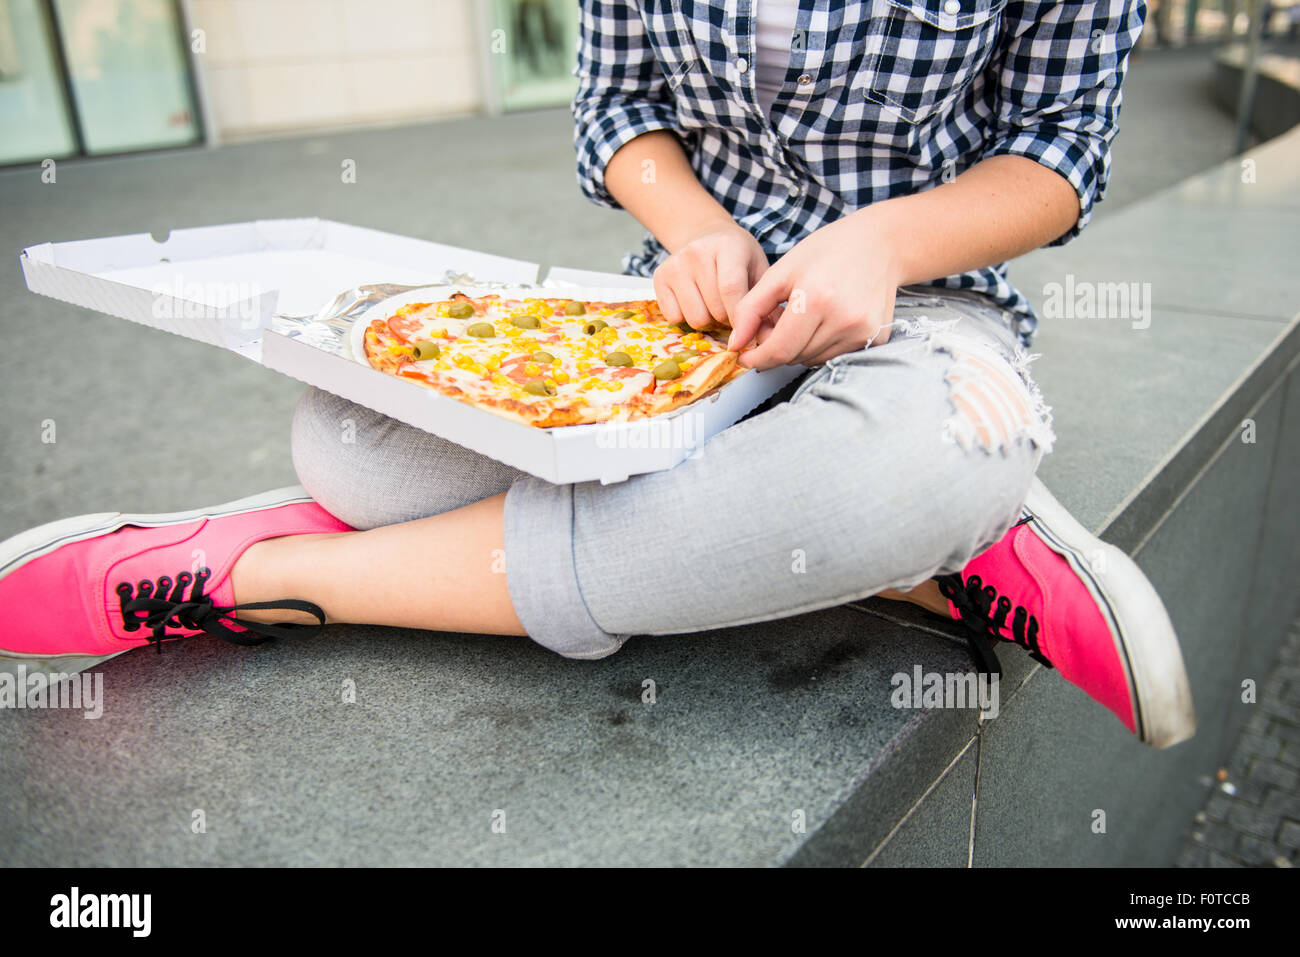 Détail de woman eating pizza en plein air street Photo Stock